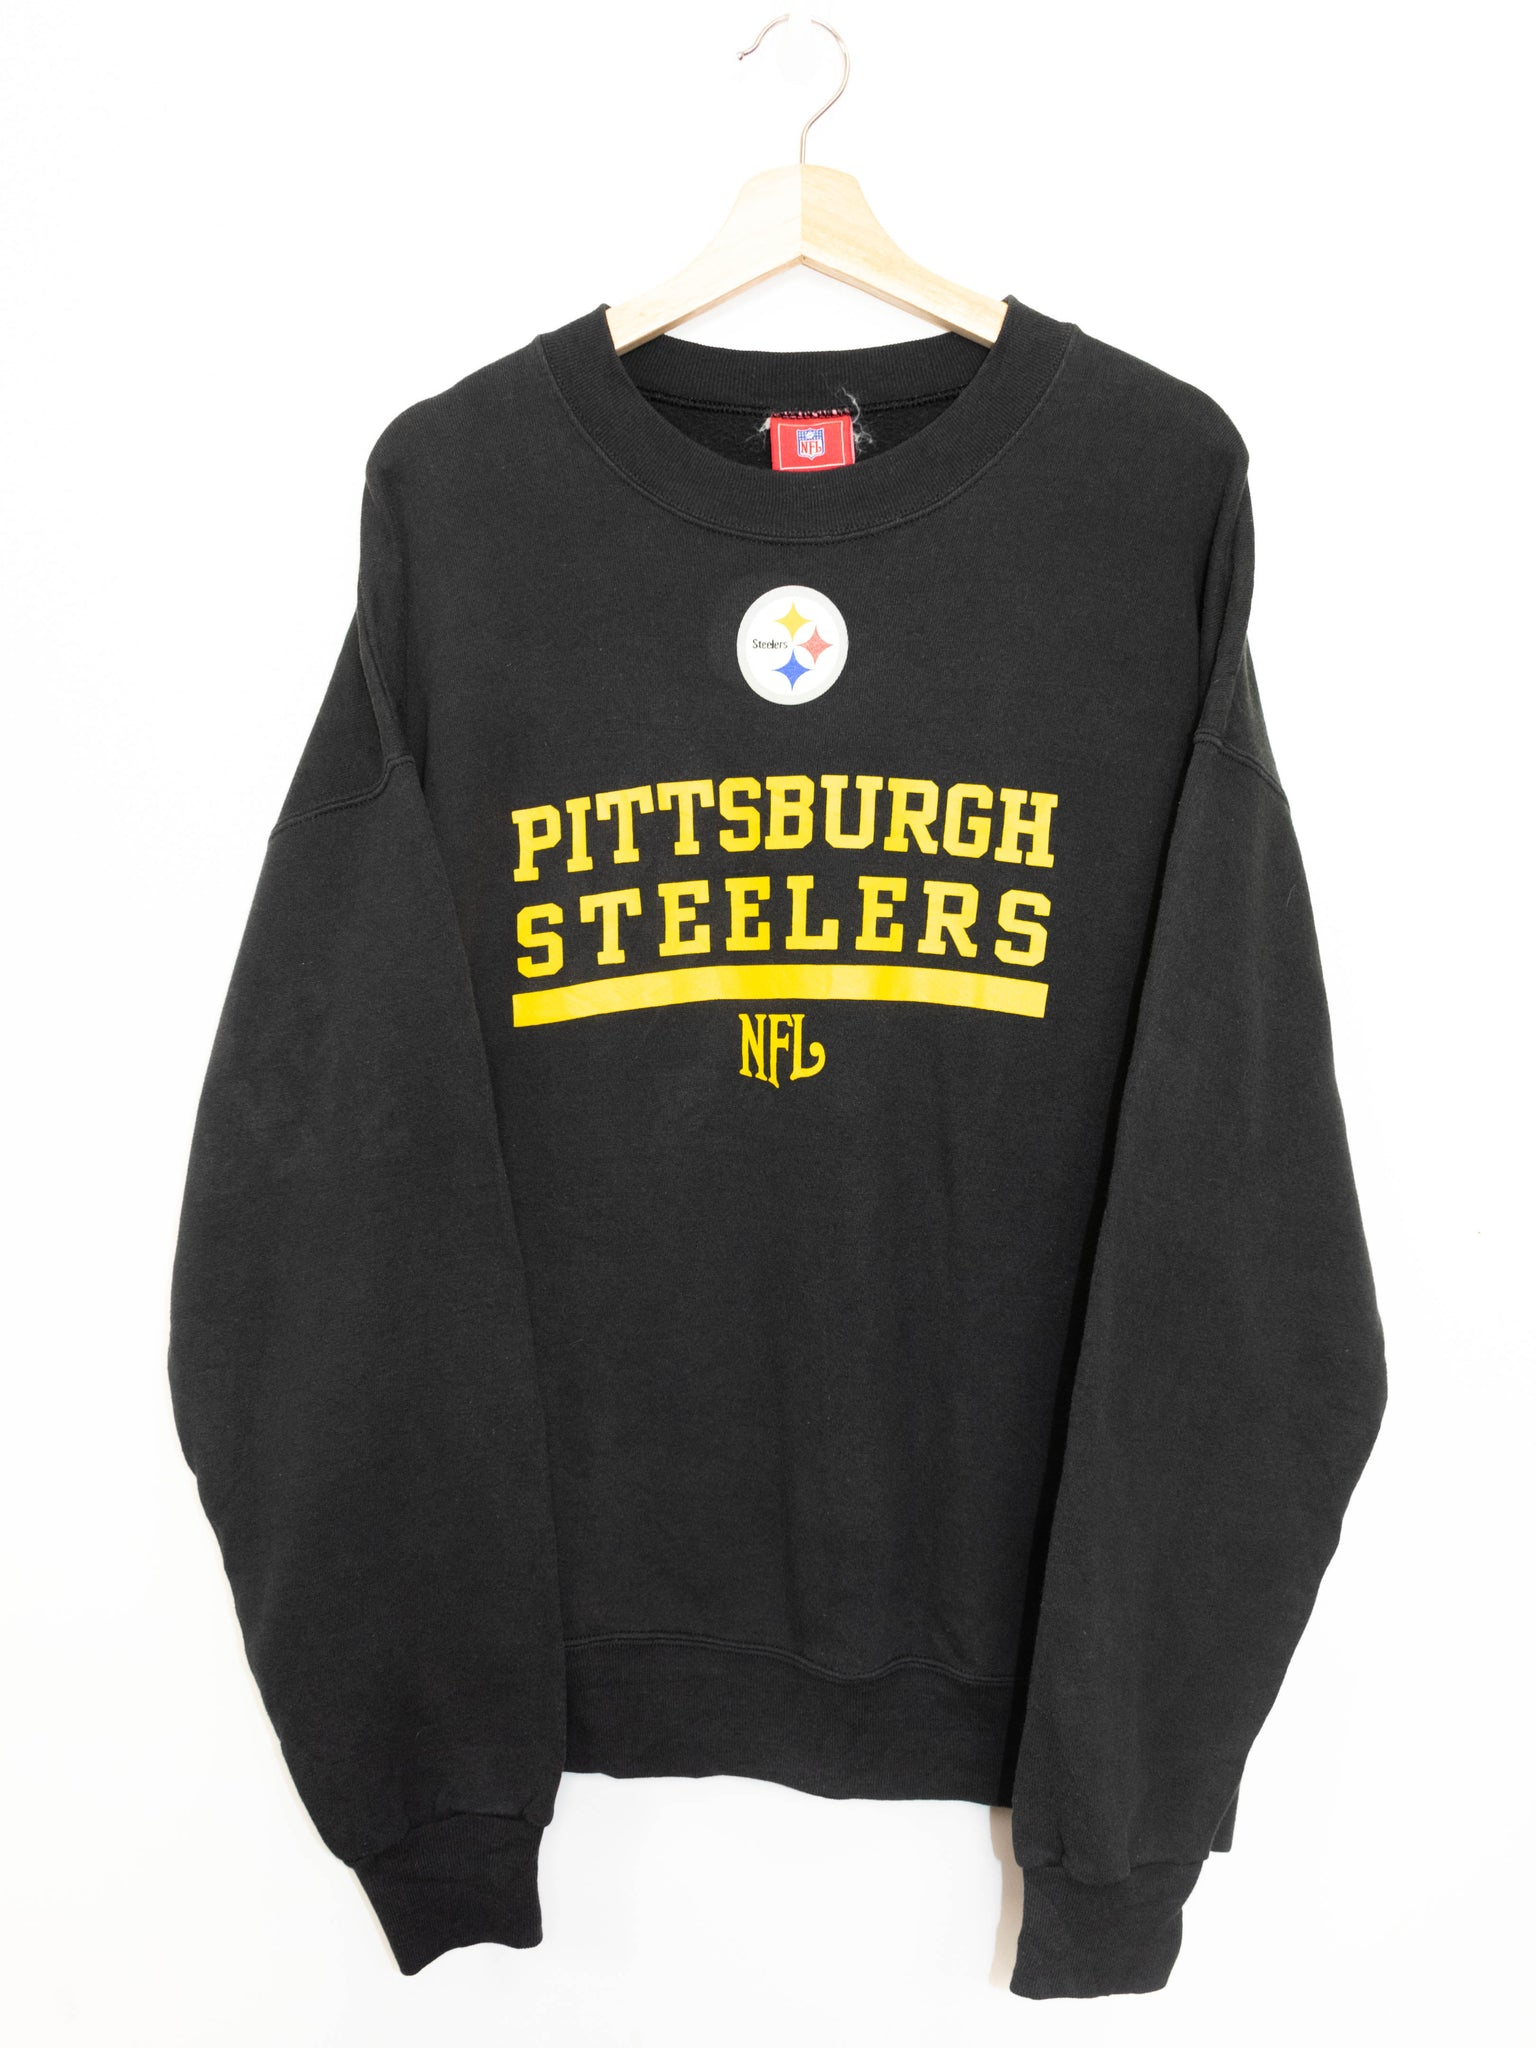 Vintage Pittsburgh Steelers sweater size: XL